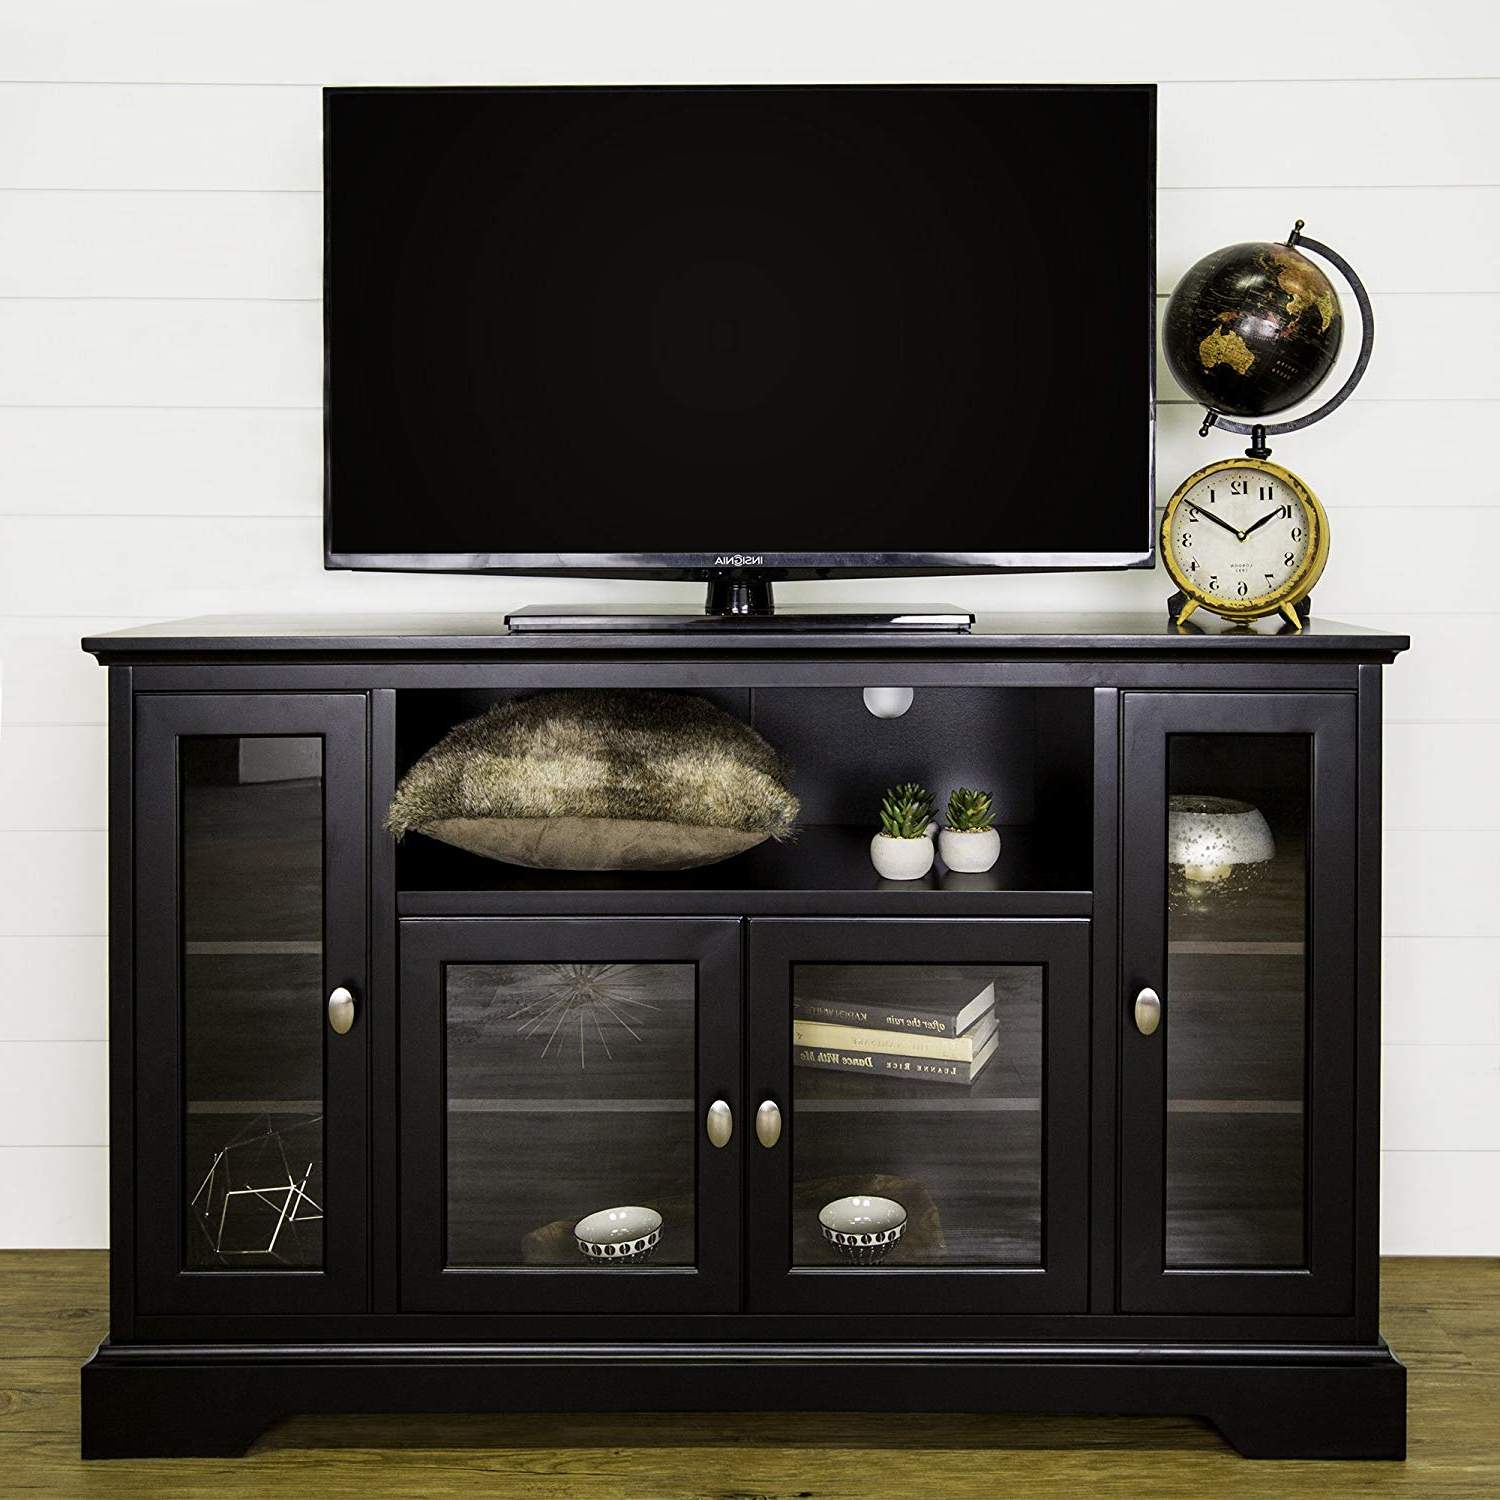 "Amazon: We Furniture 52"" Wood Highboy Style Tall Tv Stand Pertaining To Preferred Grey Wood Tv Stands (View 4 of 20)"